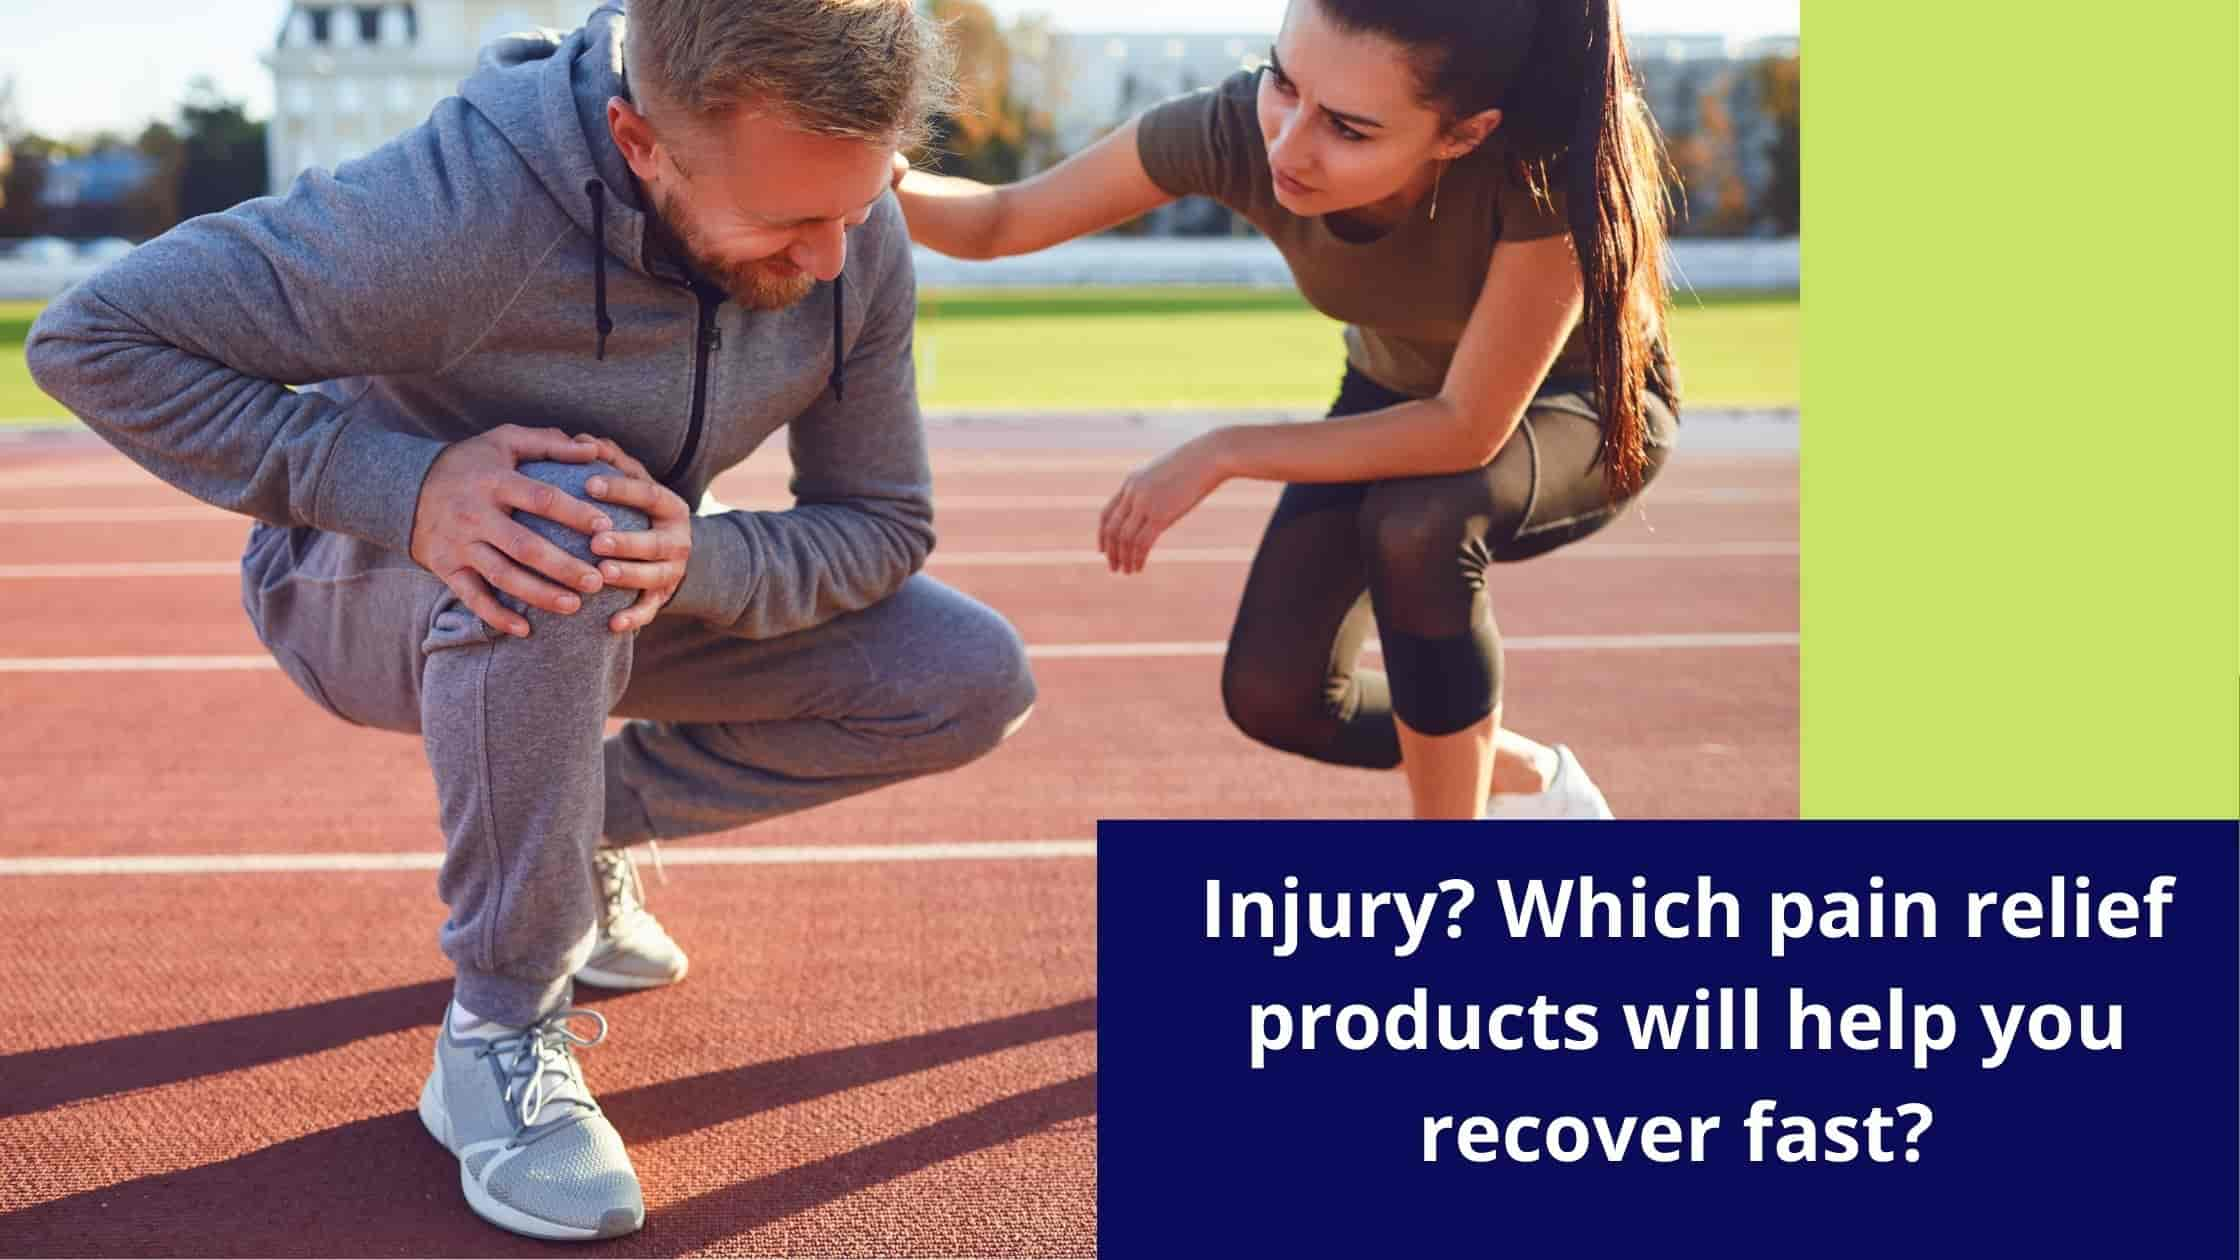 Best drugfree pain relief medication after an injury